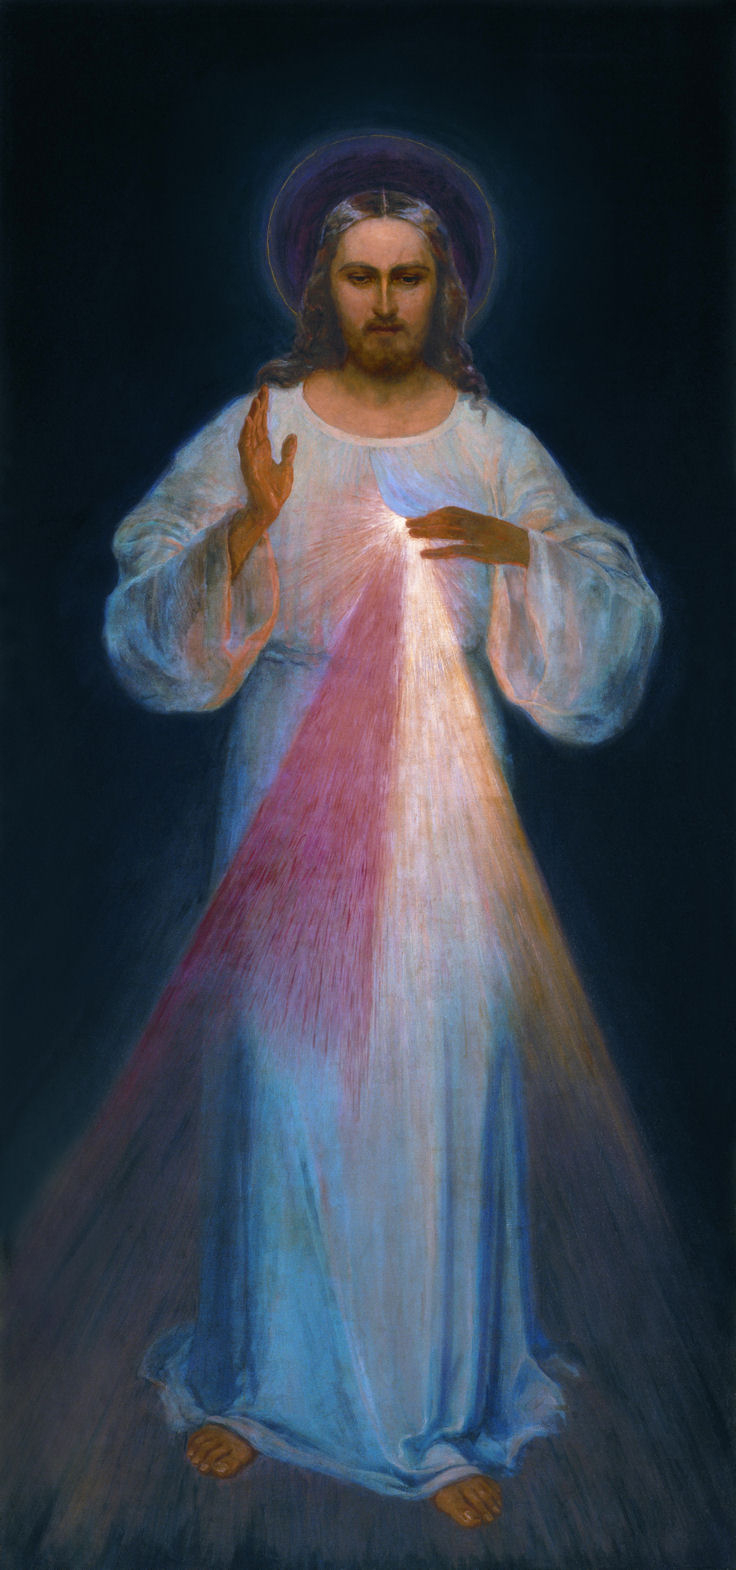 Divine Mercy Sunday - Wikipedia intended for .catholic Saint Of The Day March 5 2020